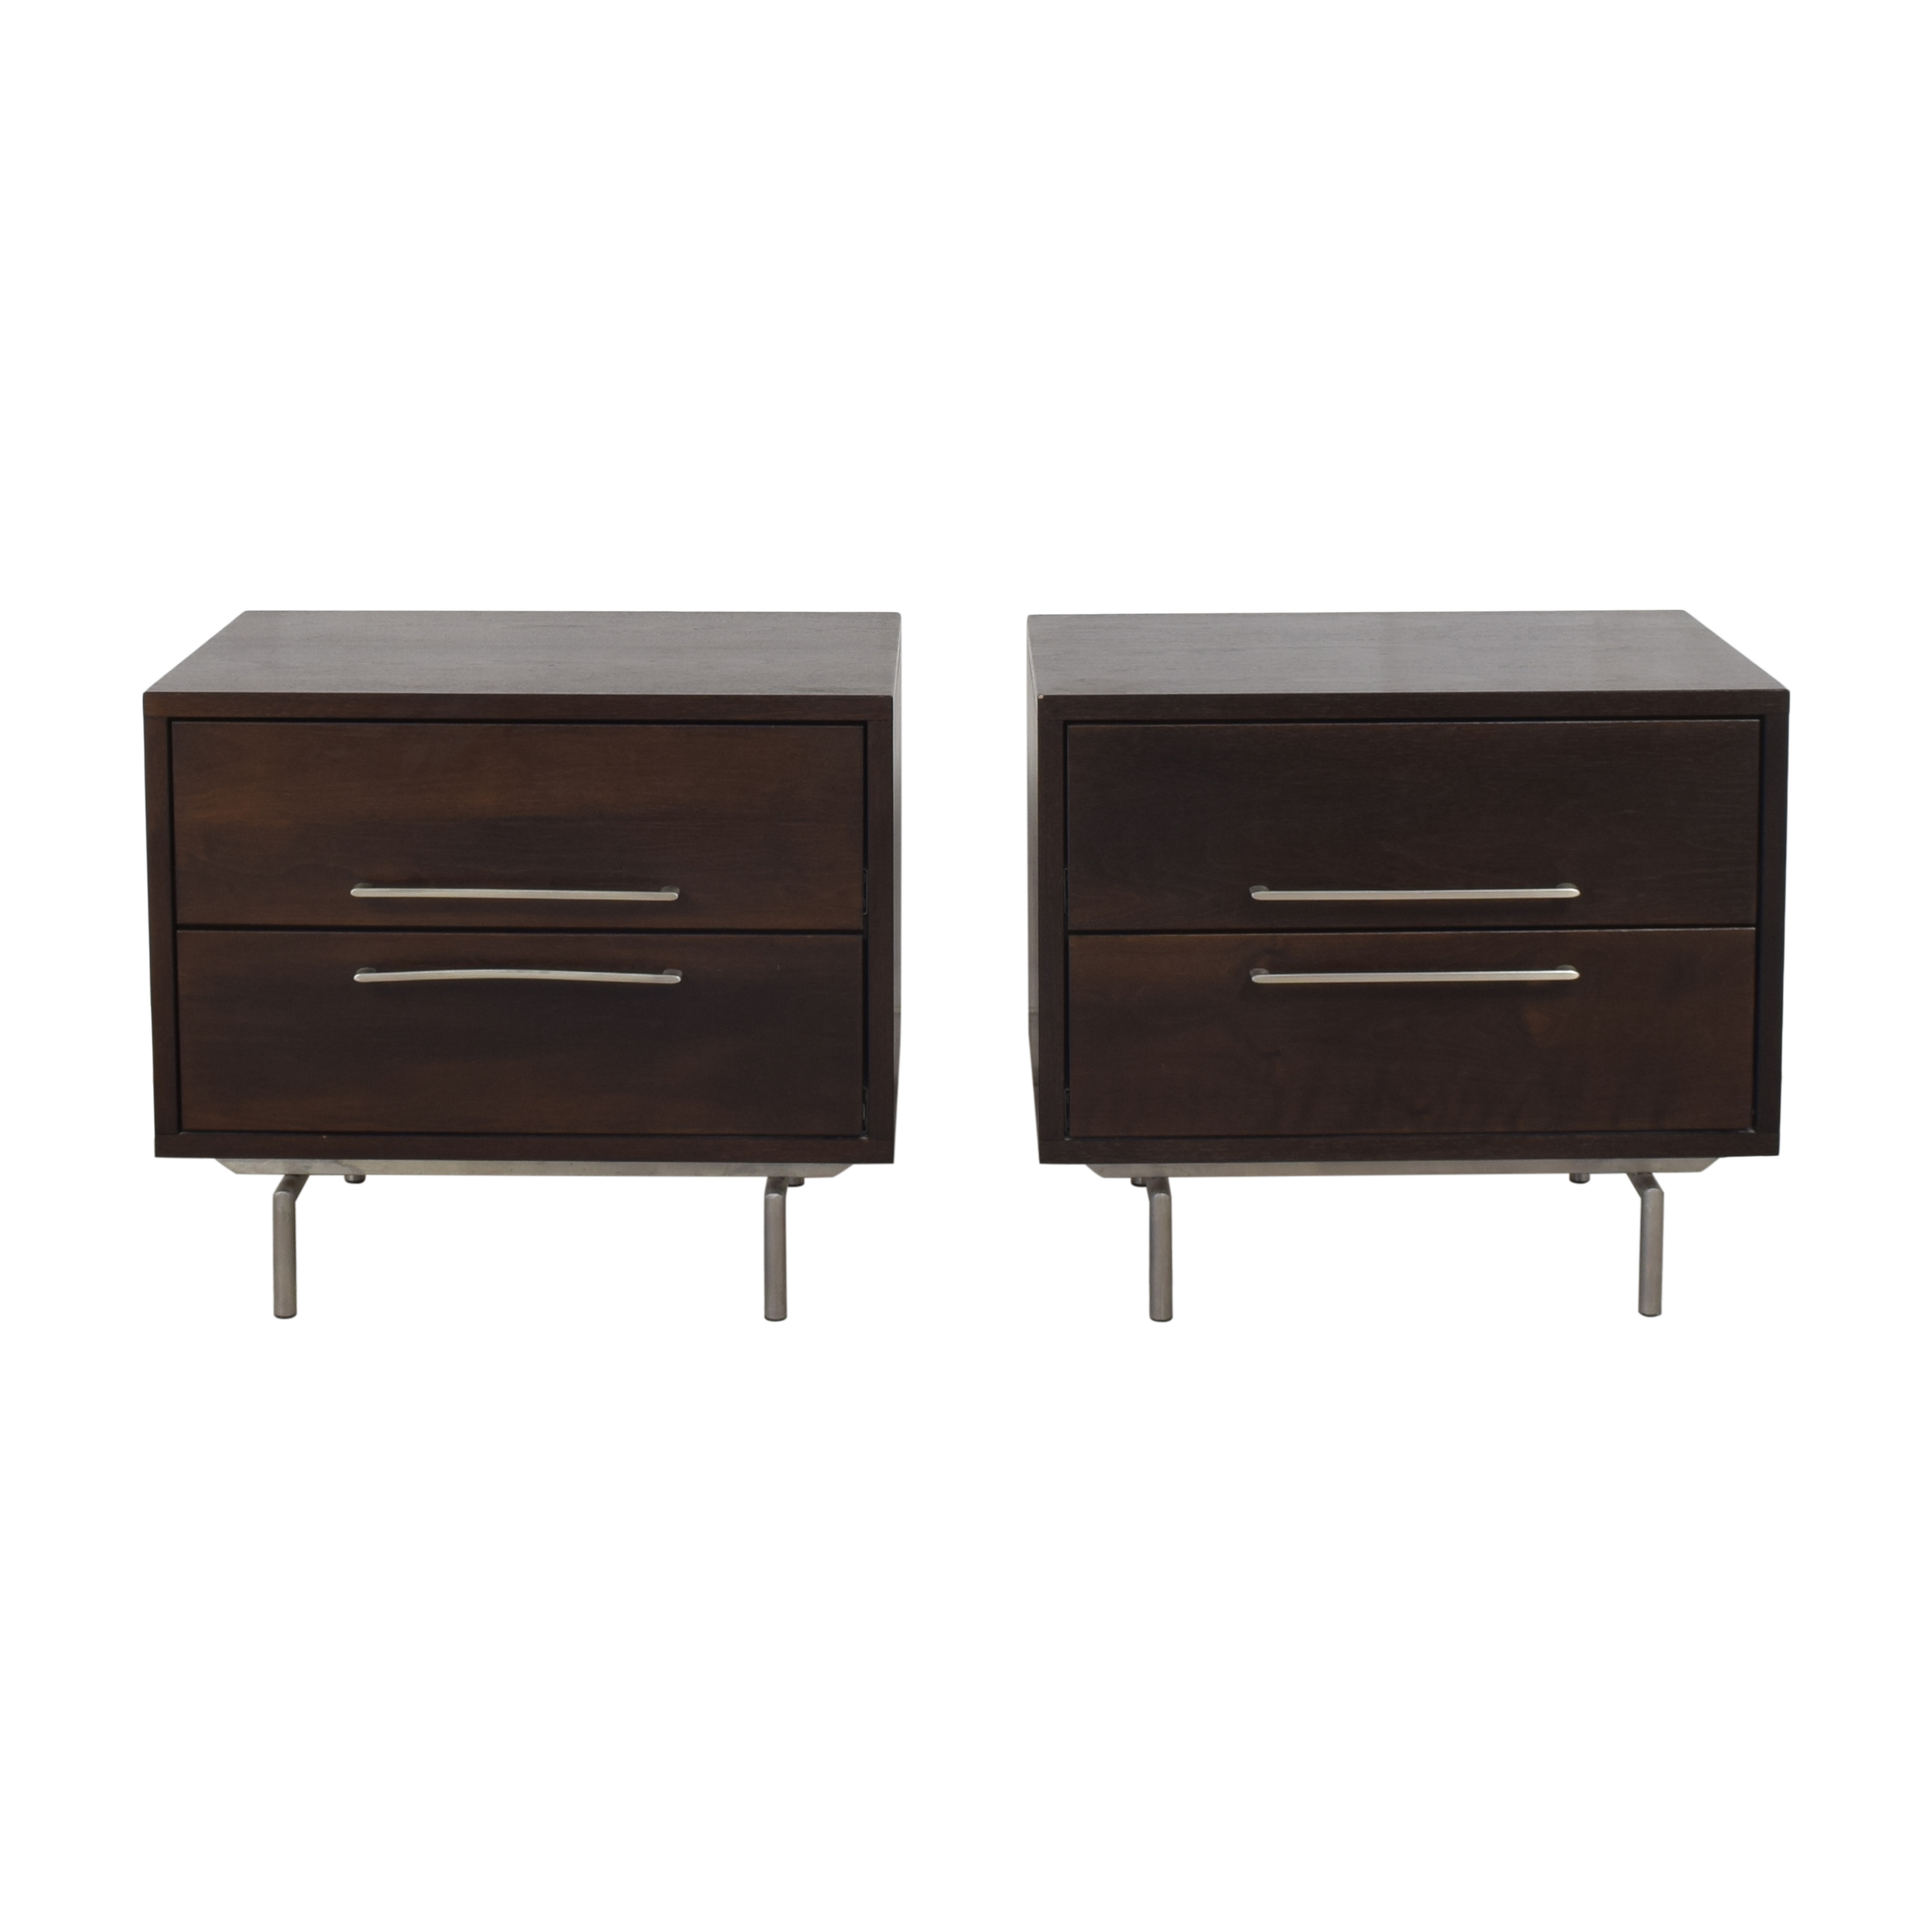 Room & Board Room & Board Two Drawer Nightstands price